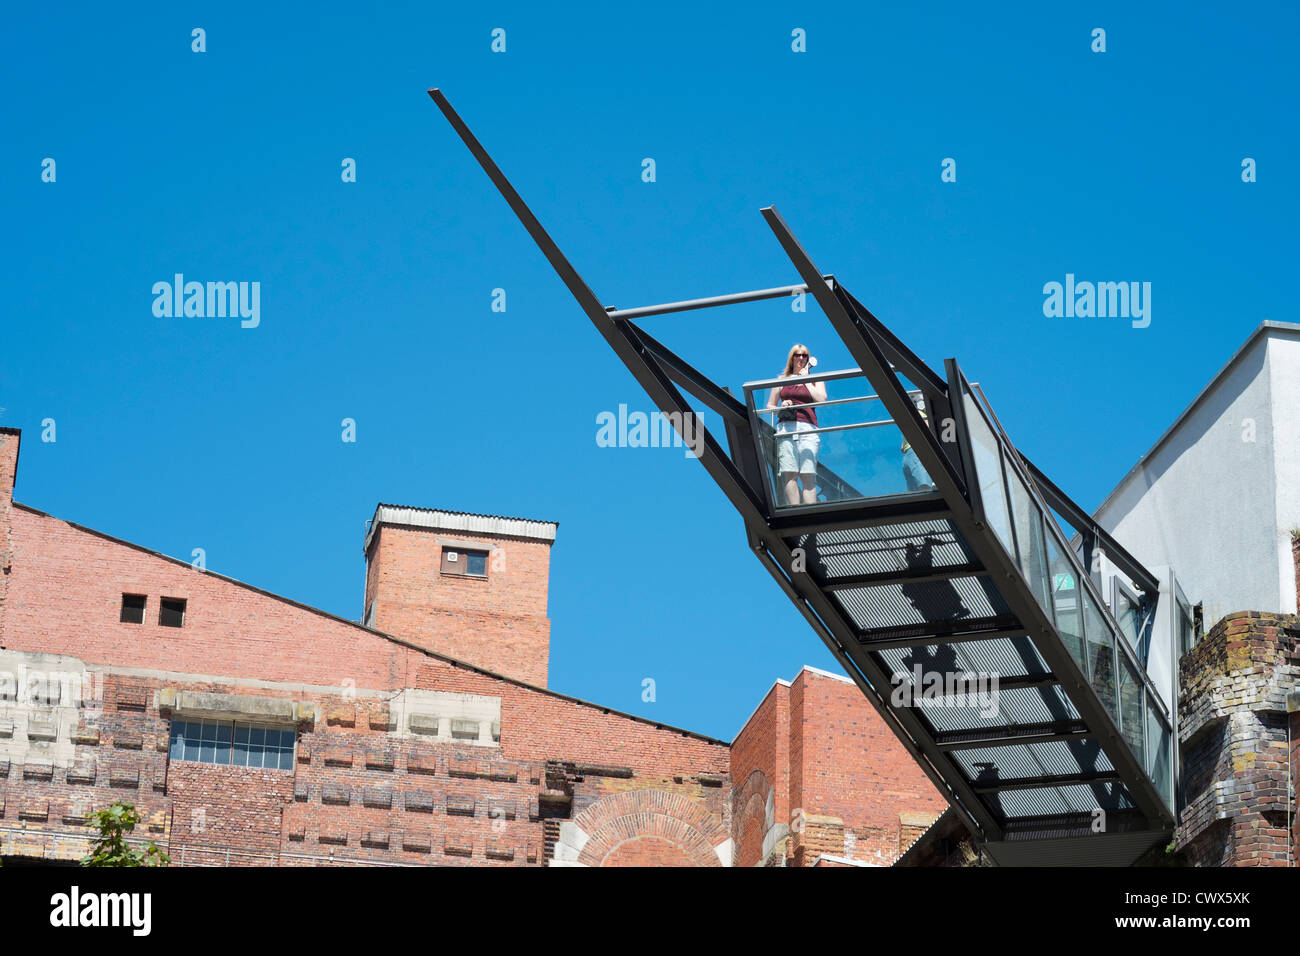 Modern architecture of viewing platform at Documentation Center at Congress Hall, National Socialist rally Grounds - Stock Image